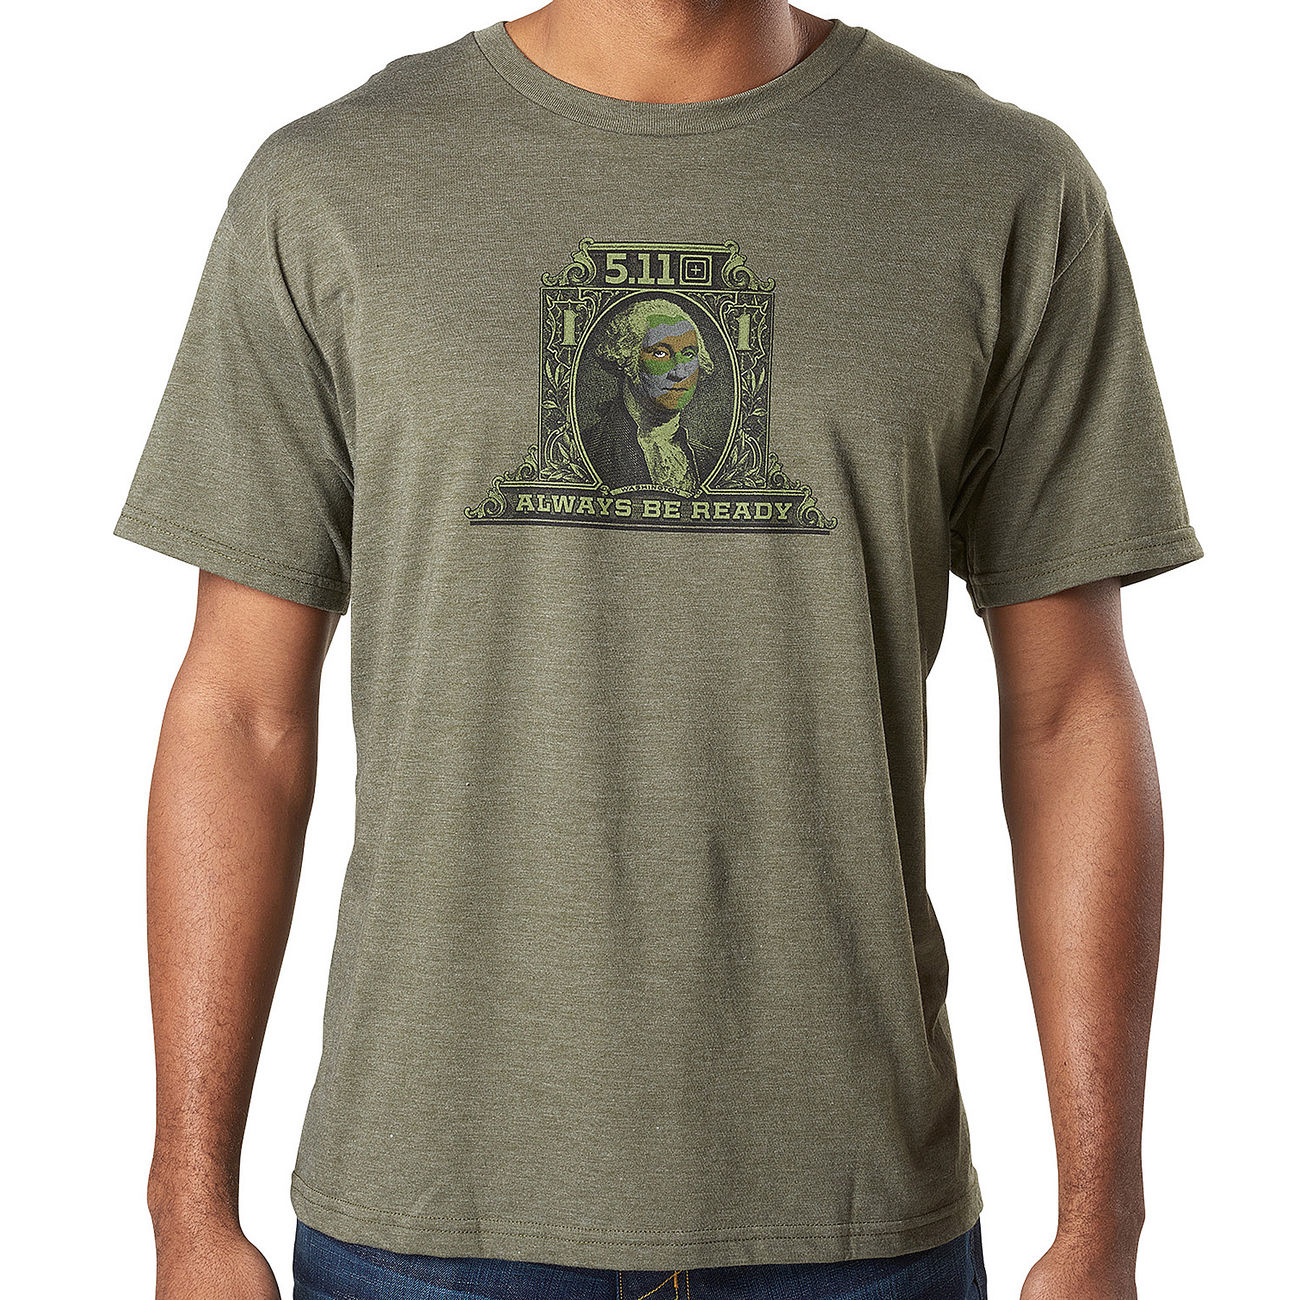 5.11 T-Shirt George Tactical military green heather 0